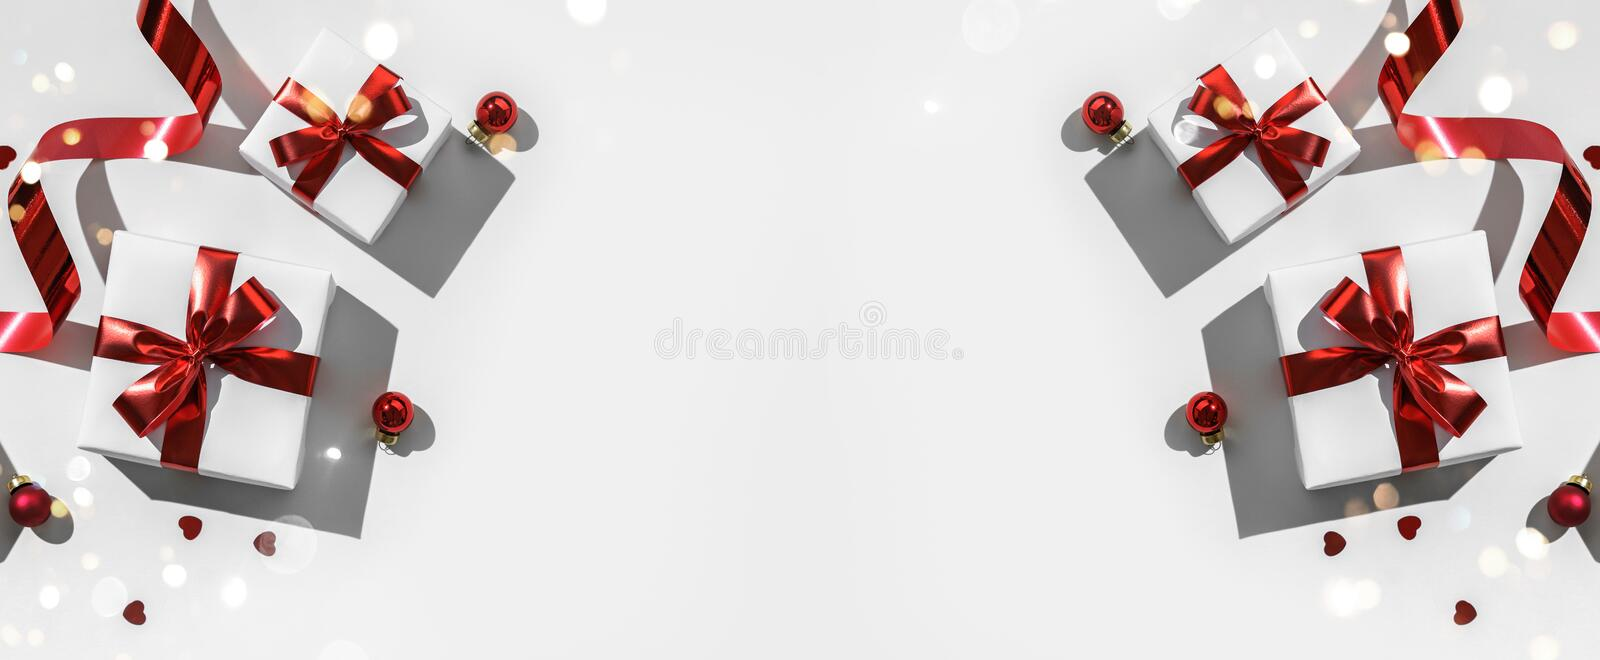 Christmas gift boxes with red ribbon and decoration on white background. Xmas and Happy New Year holiday, bokeh, light. Flat lay. Top view, harsh shadow stock images